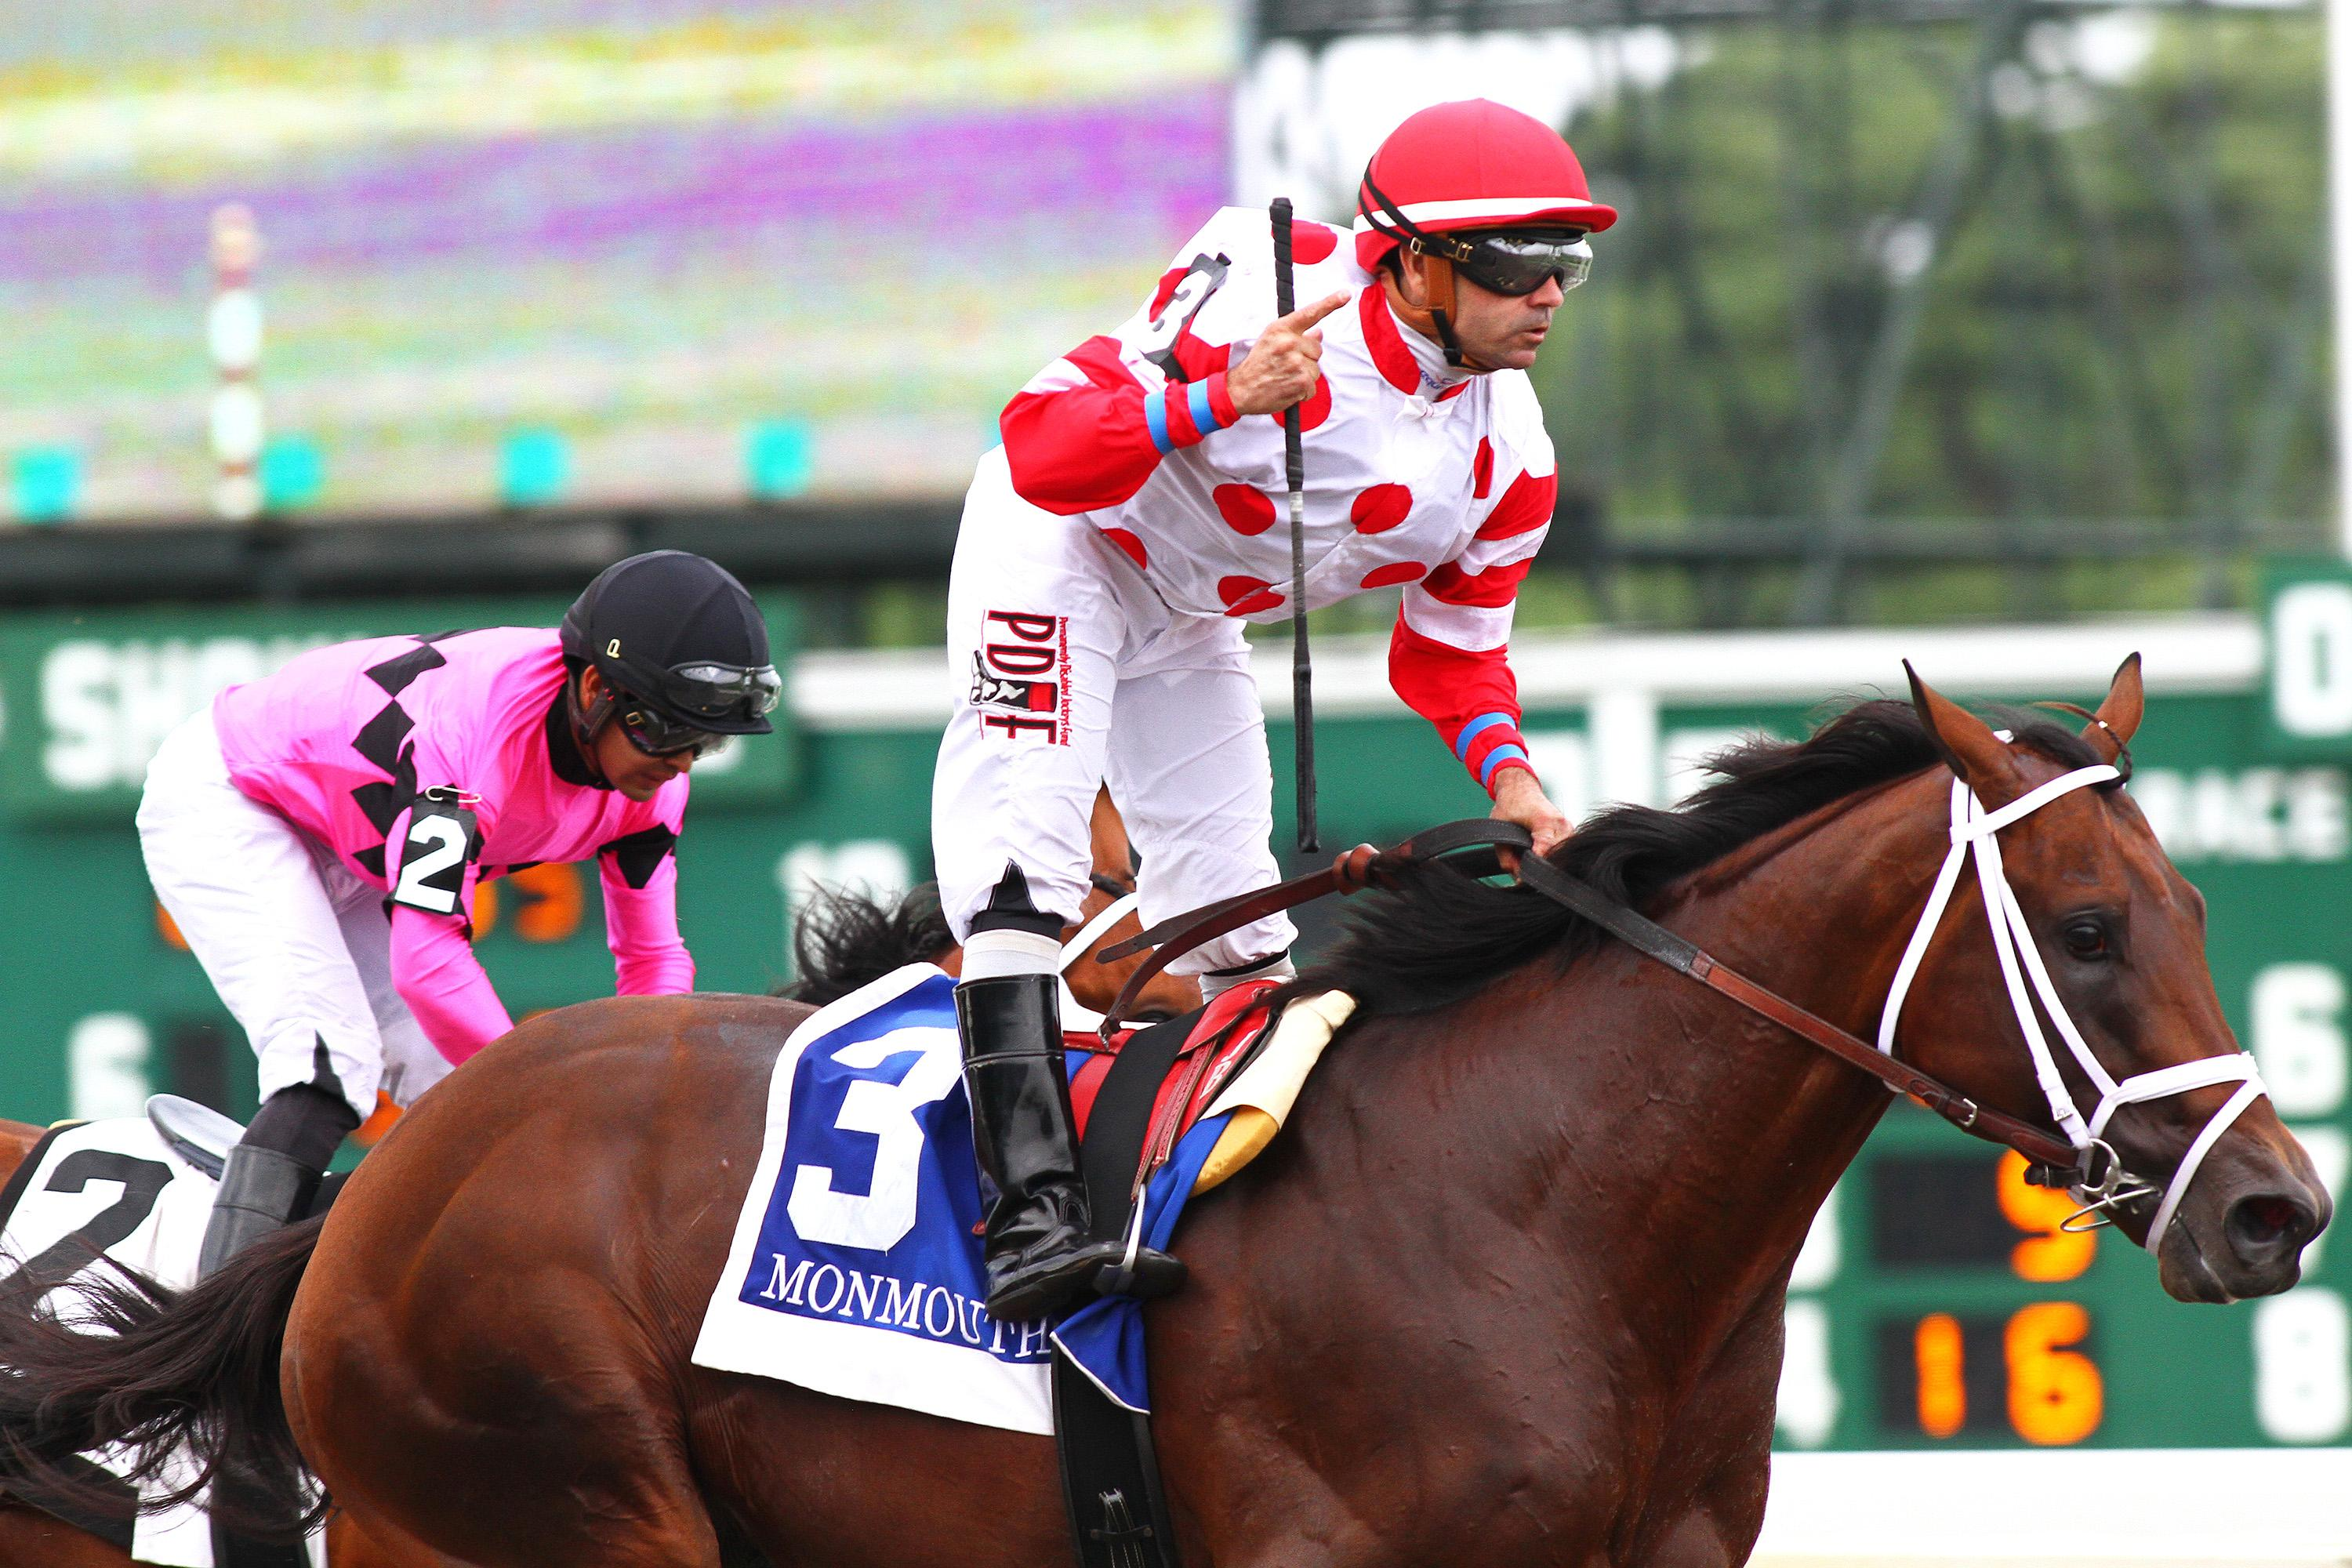 2019 Haskell Invitational Cheat Sheet | America's Best Racing